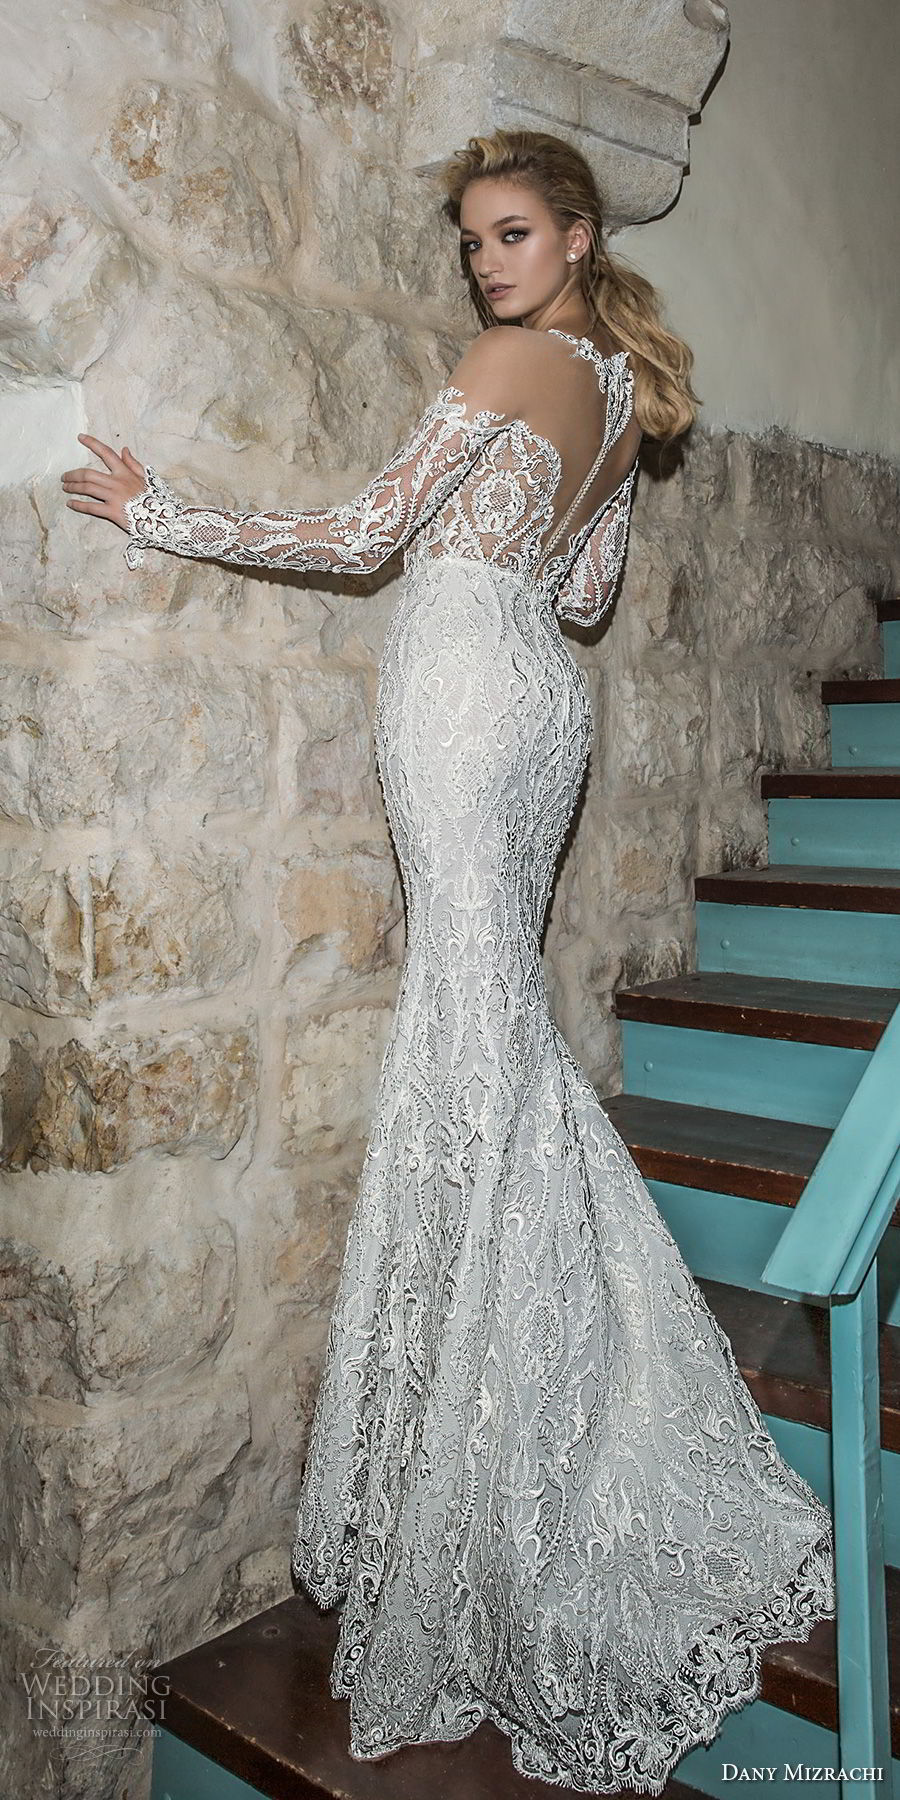 dany mizrachi spring 2018 bridal long sleeves off the shoulder deep plunging sweetheart neckline full embellishment sexy fit and flare mermaid wedding dress sheer back sweep train (2) bv